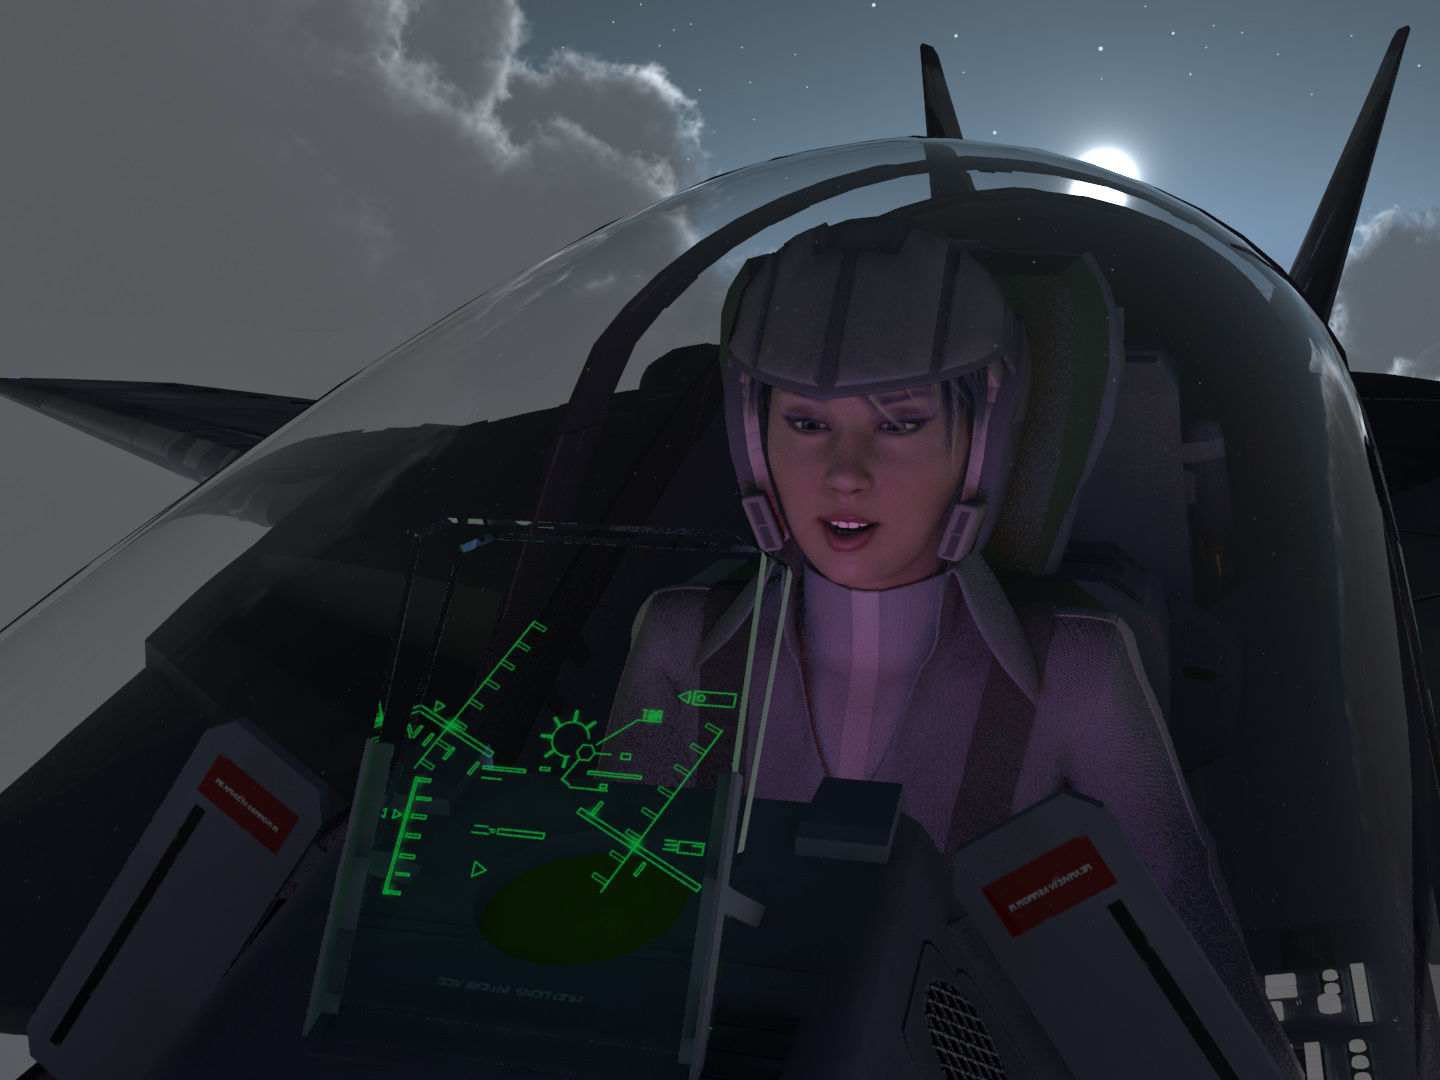 Nocturne for Valkyrie, No. 1